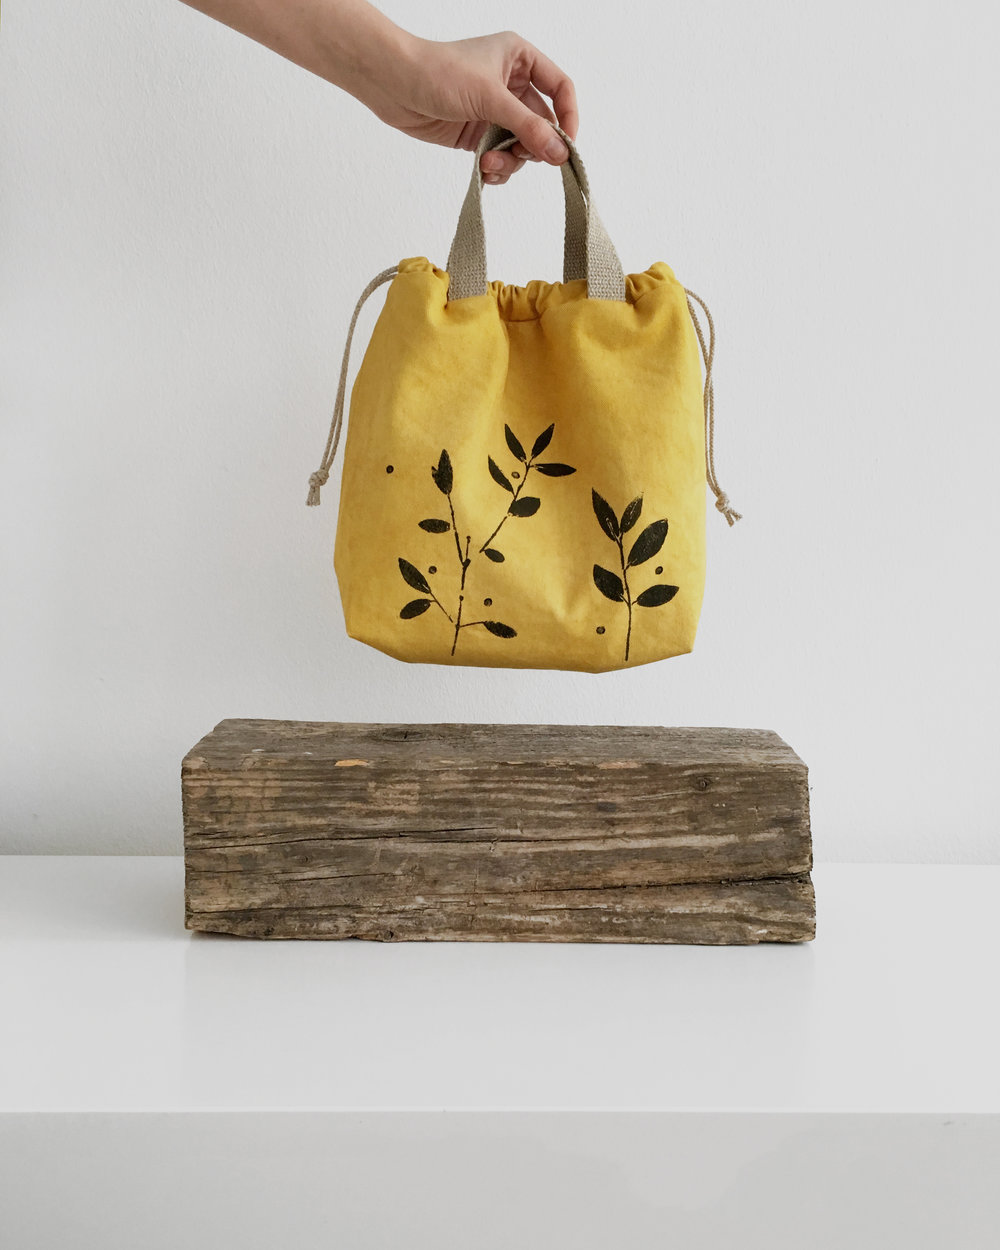 Sunshine yellow canvas bag - dyed with marigold flowers - for knitters and makers